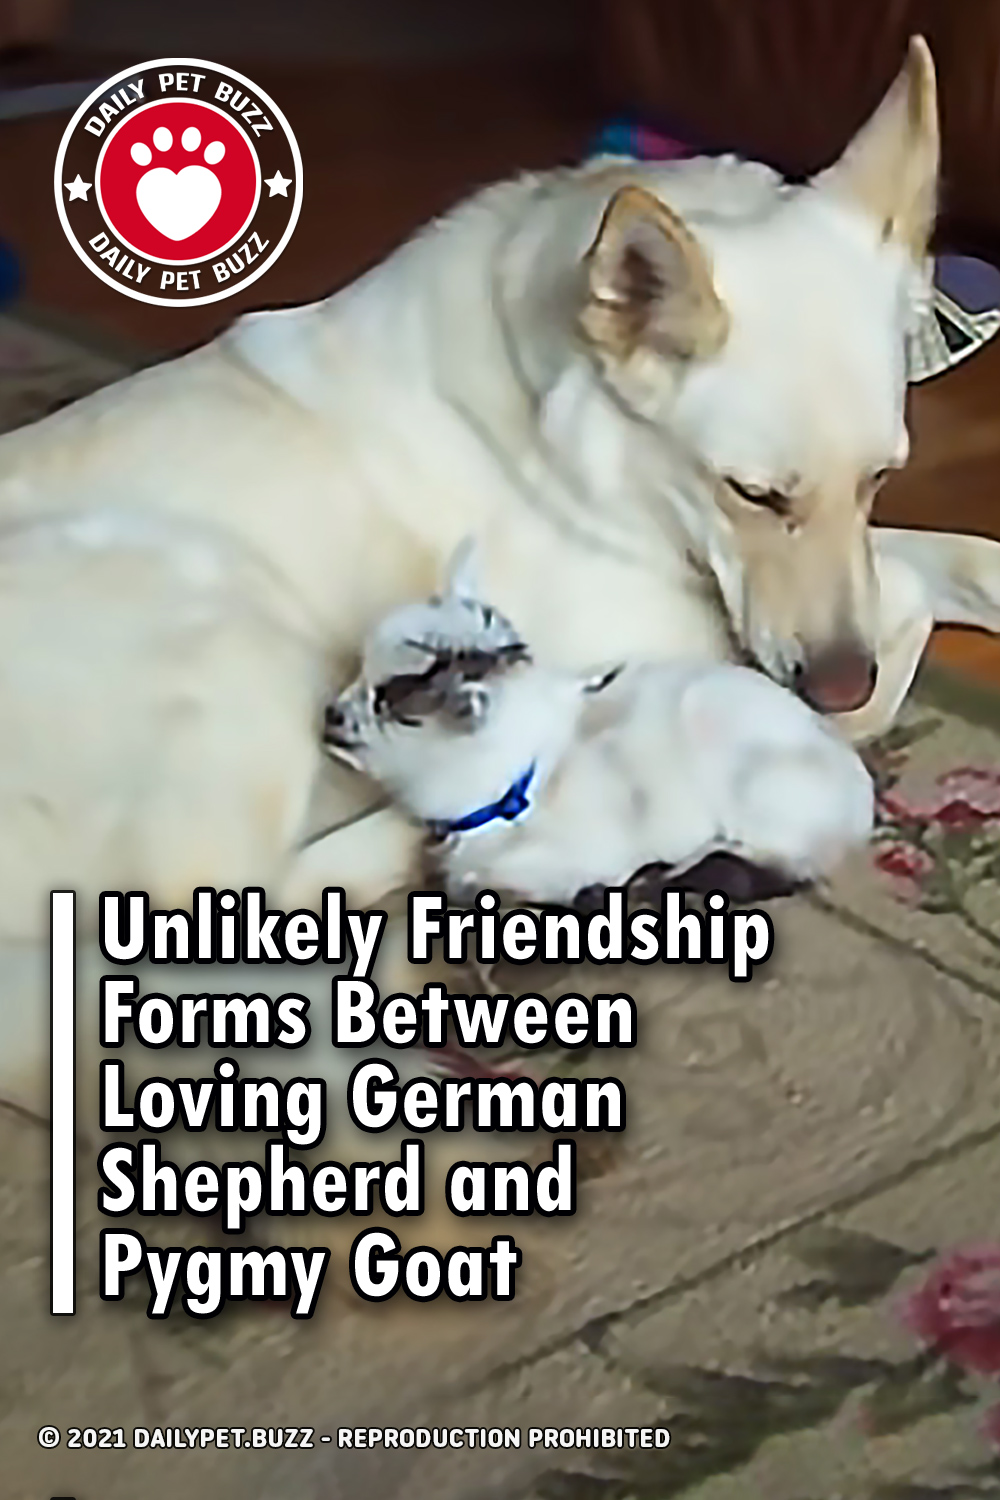 Unlikely Friendship Forms Between Loving German Shepherd and Pygmy Goat